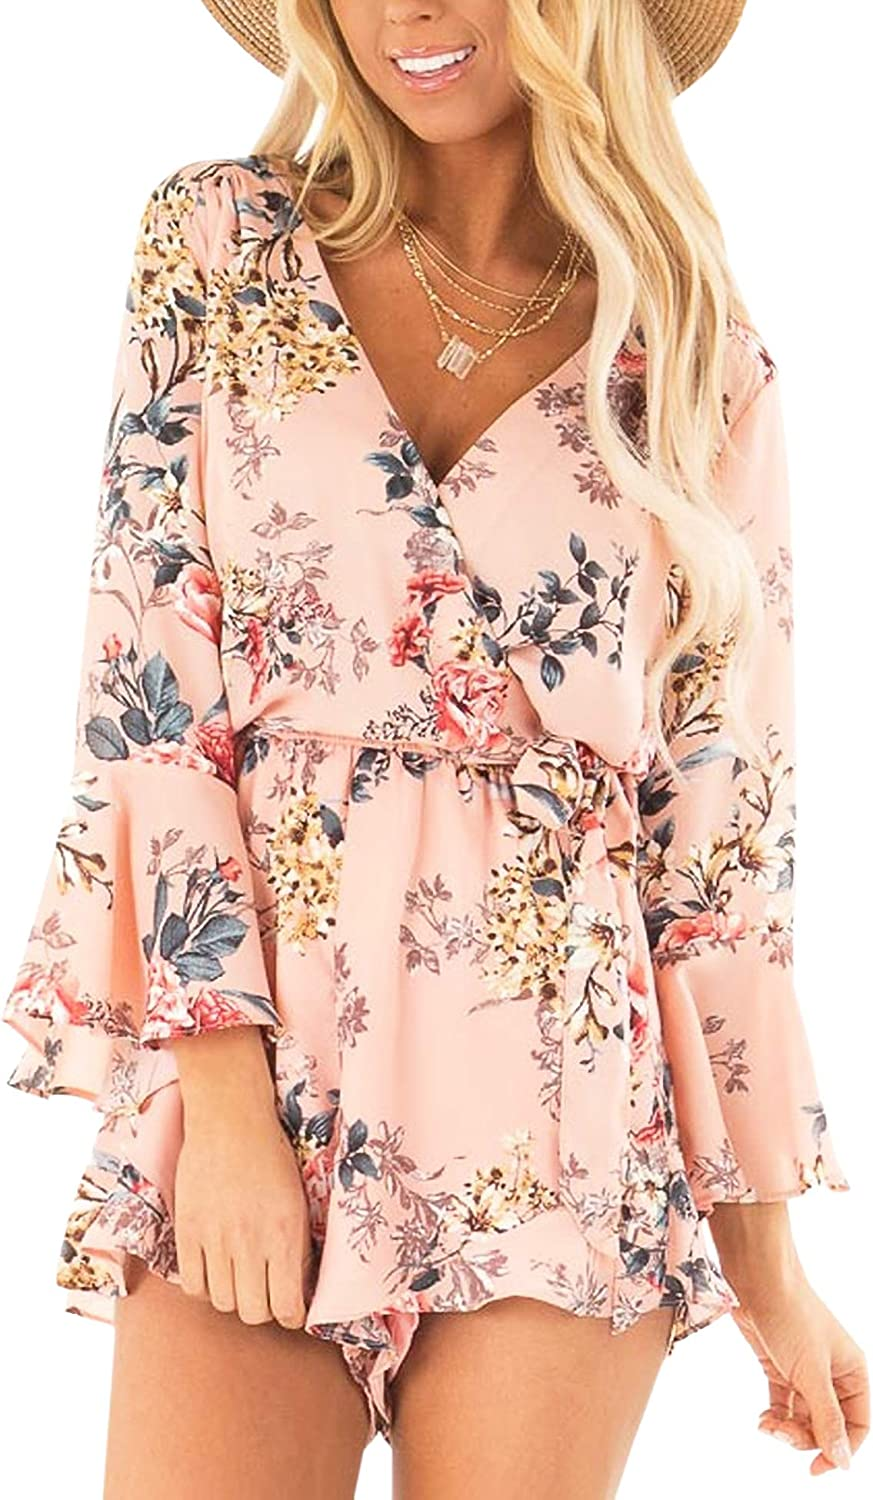 AIMCOO Women's Summer Floral Print sold out Romper Bell Selling rankings Long Neck V Deep